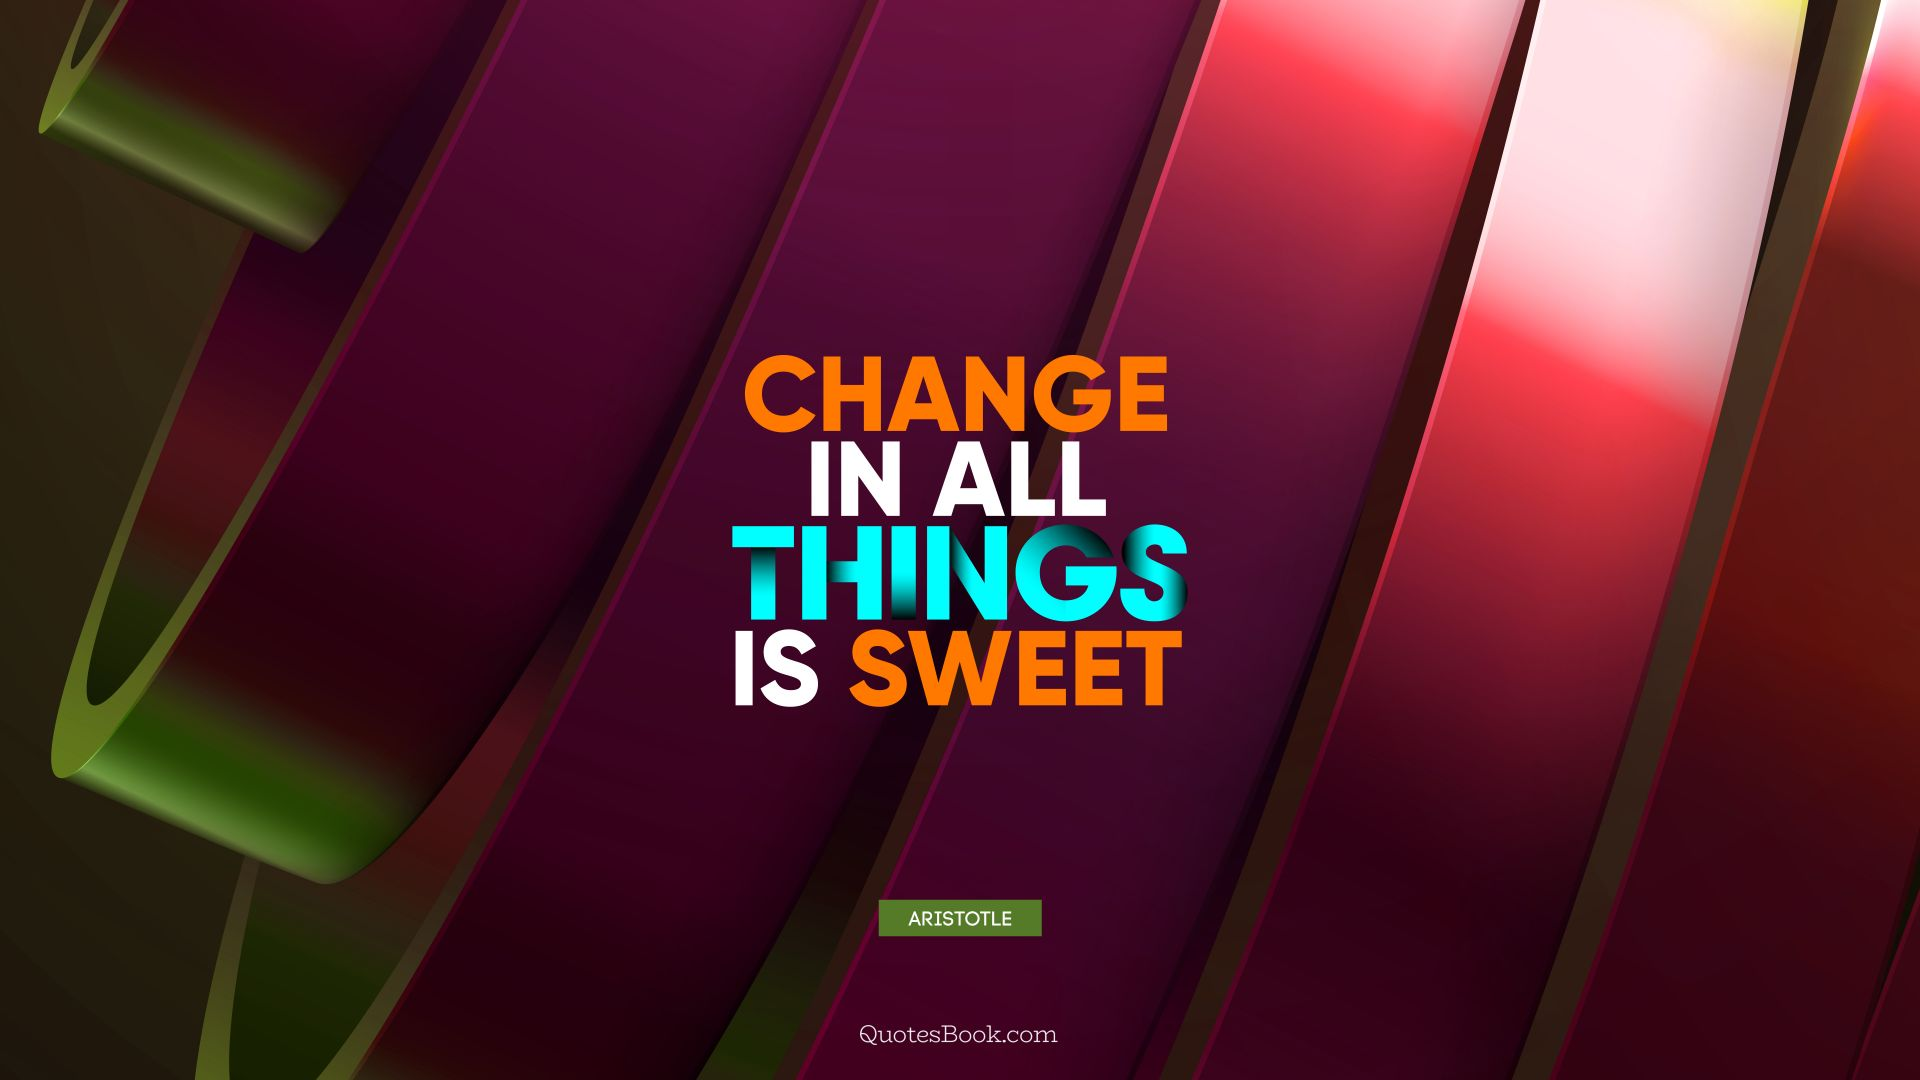 Change in all things is sweet. - Quote by Aristotle